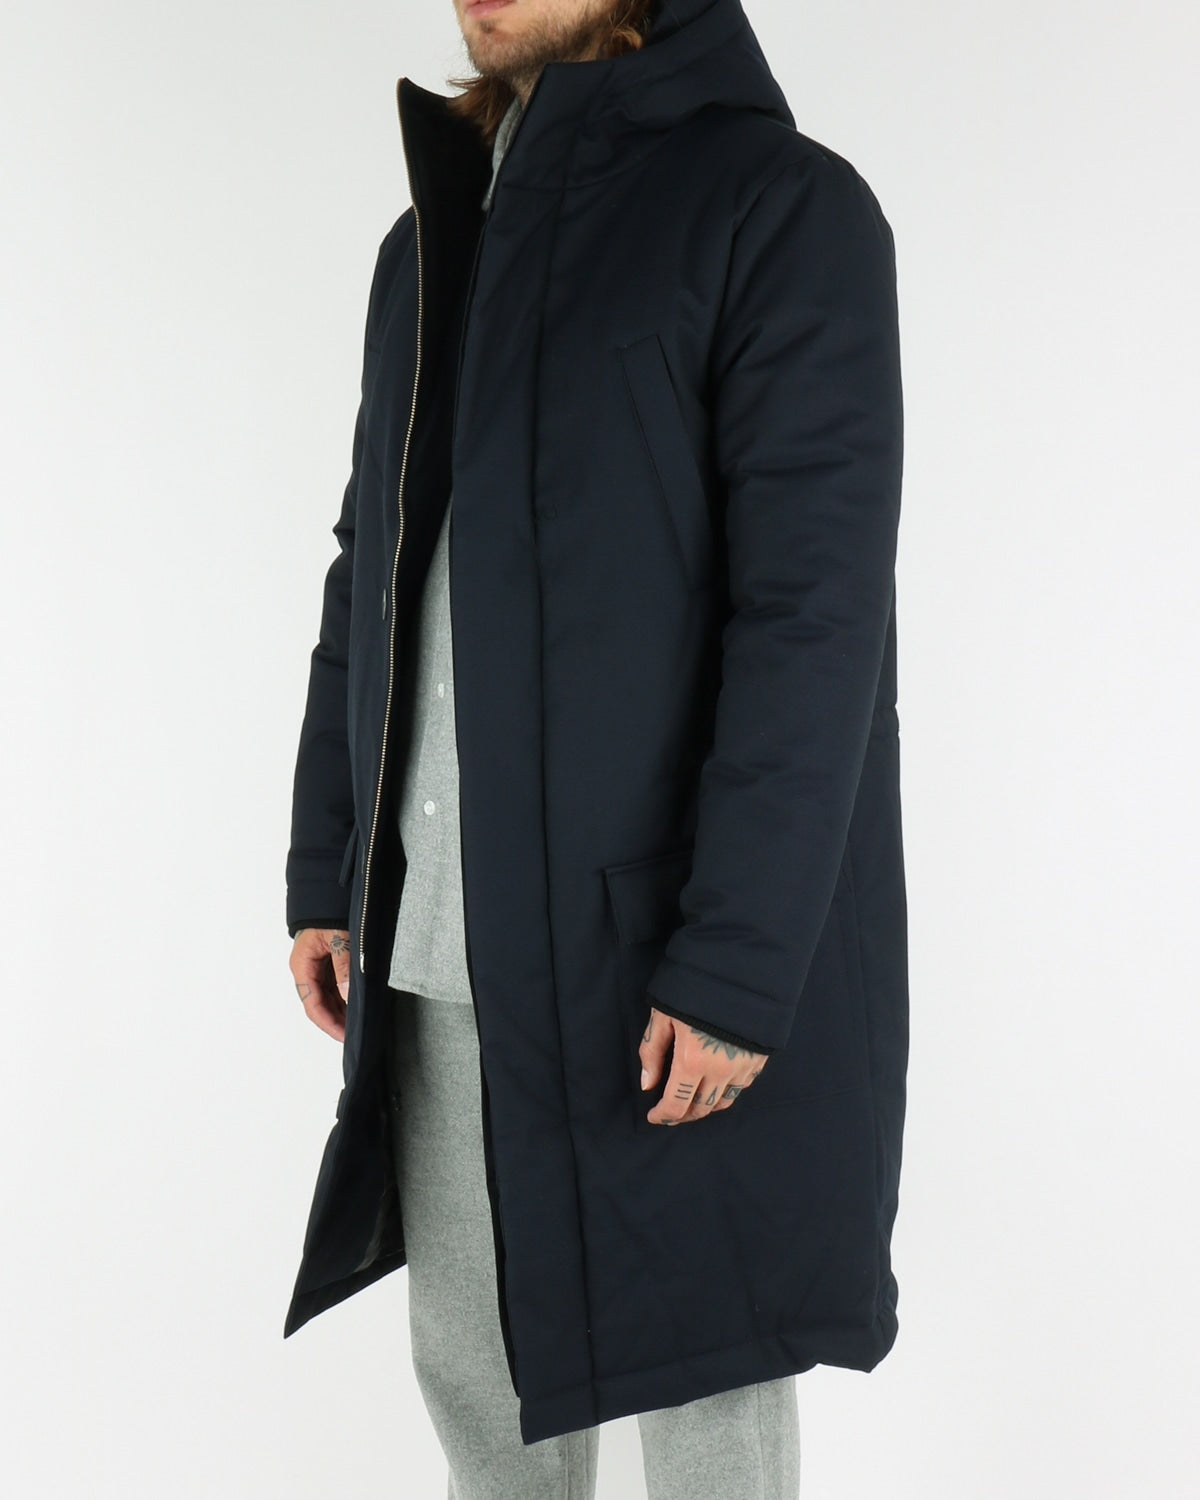 journal clothing_million coat_navy_view_2_5